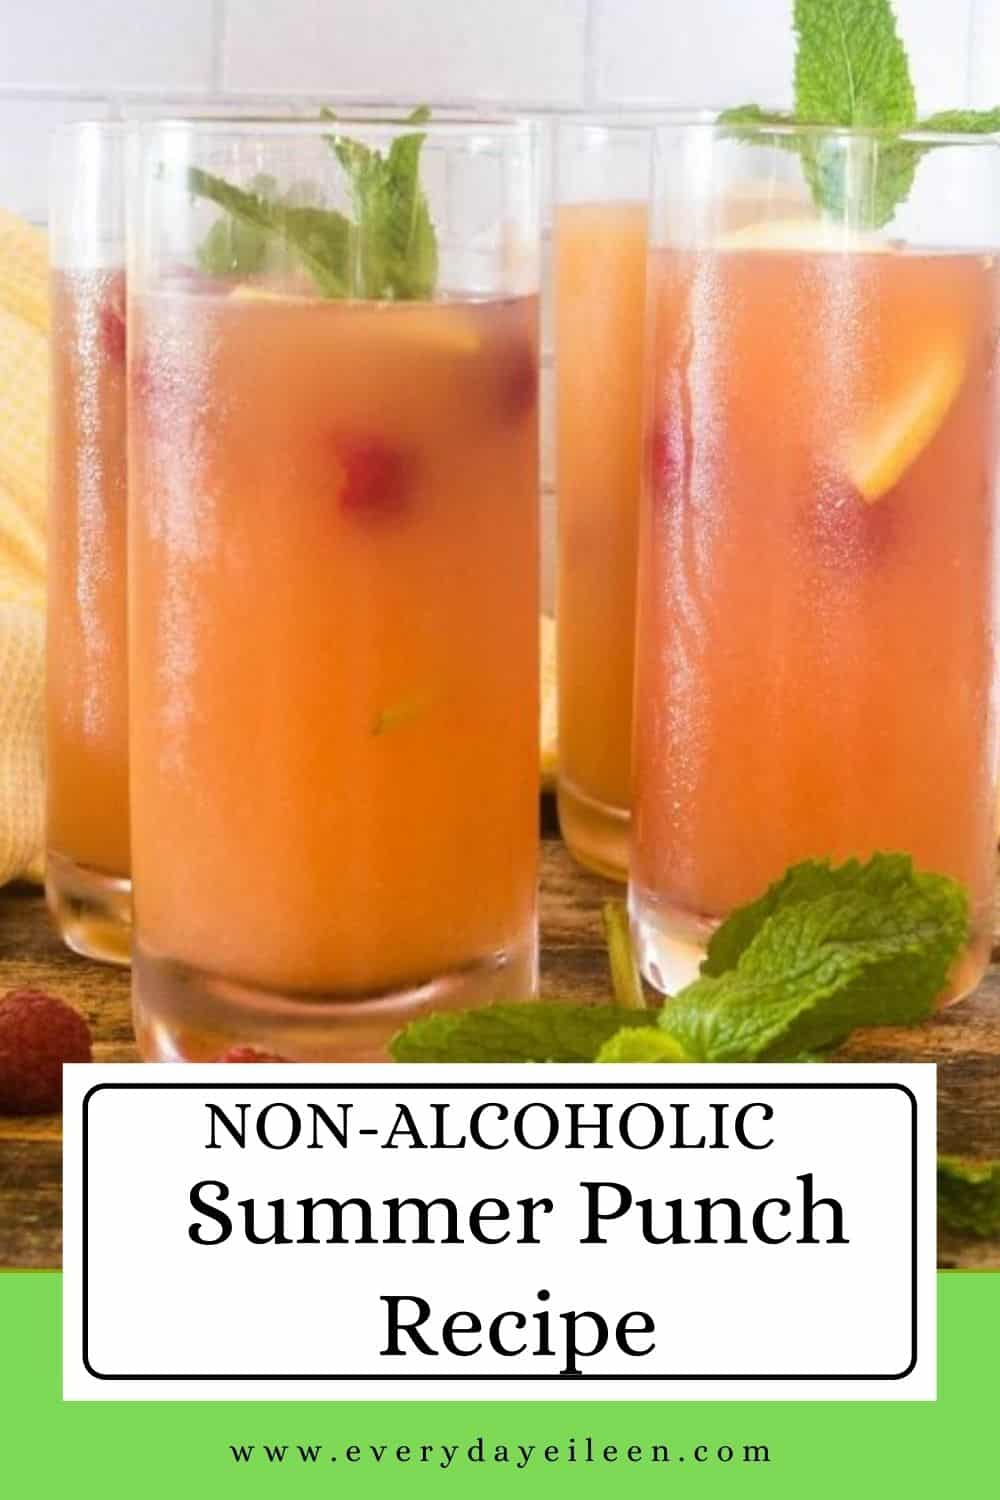 Enjoy a refreshing summer punch made with pineapple juice, orange juice, and fruit flavored seltzer. A wonderful mocktail, a non-alcoholic fruit drink for everyone to enjoy. Make a big batch for your family dinner and BBQ. Bring along for pot-lucks for a fun fruity beverage without alcohol.  Perfect for any summer day by the pool or at the beach. Make a big batch for baby showers, wedding showers, brunch, Mother's Day, Easter, Memorial day, and Fathers Day. Add to any summer celebration.  via @everydayeileen